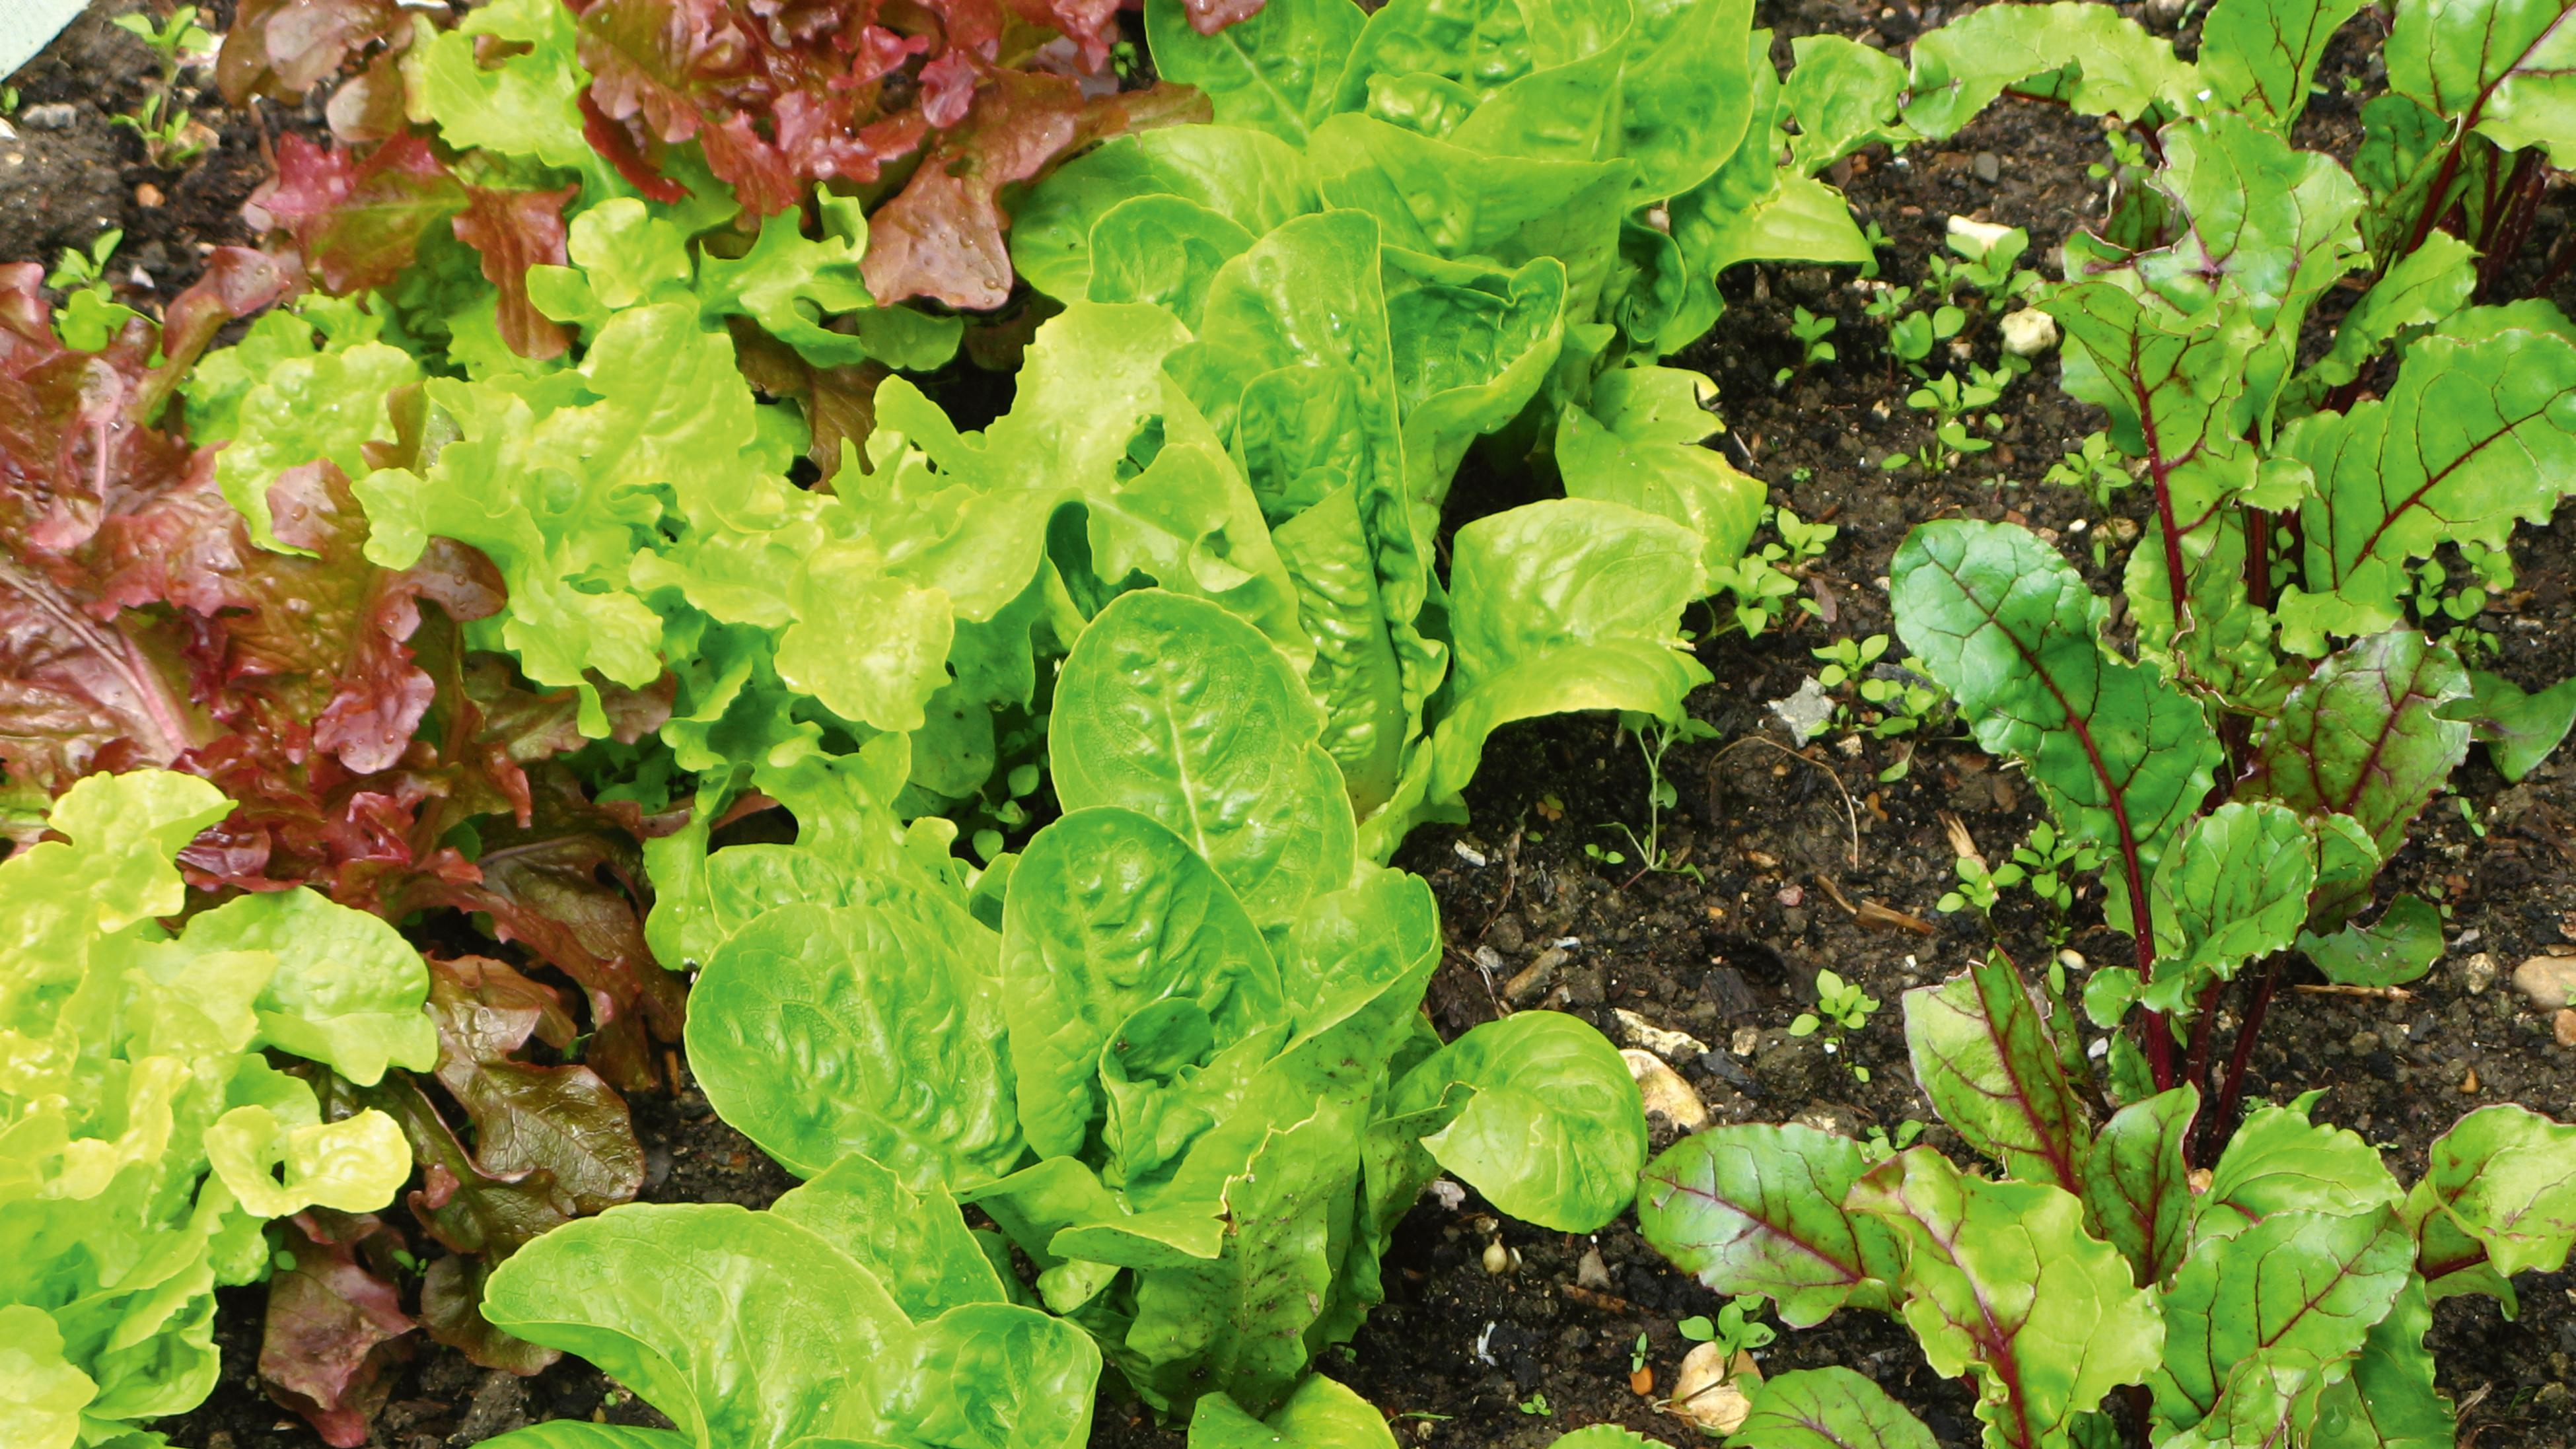 Herb, lettuce and spinach seedlings growing in a garden bed